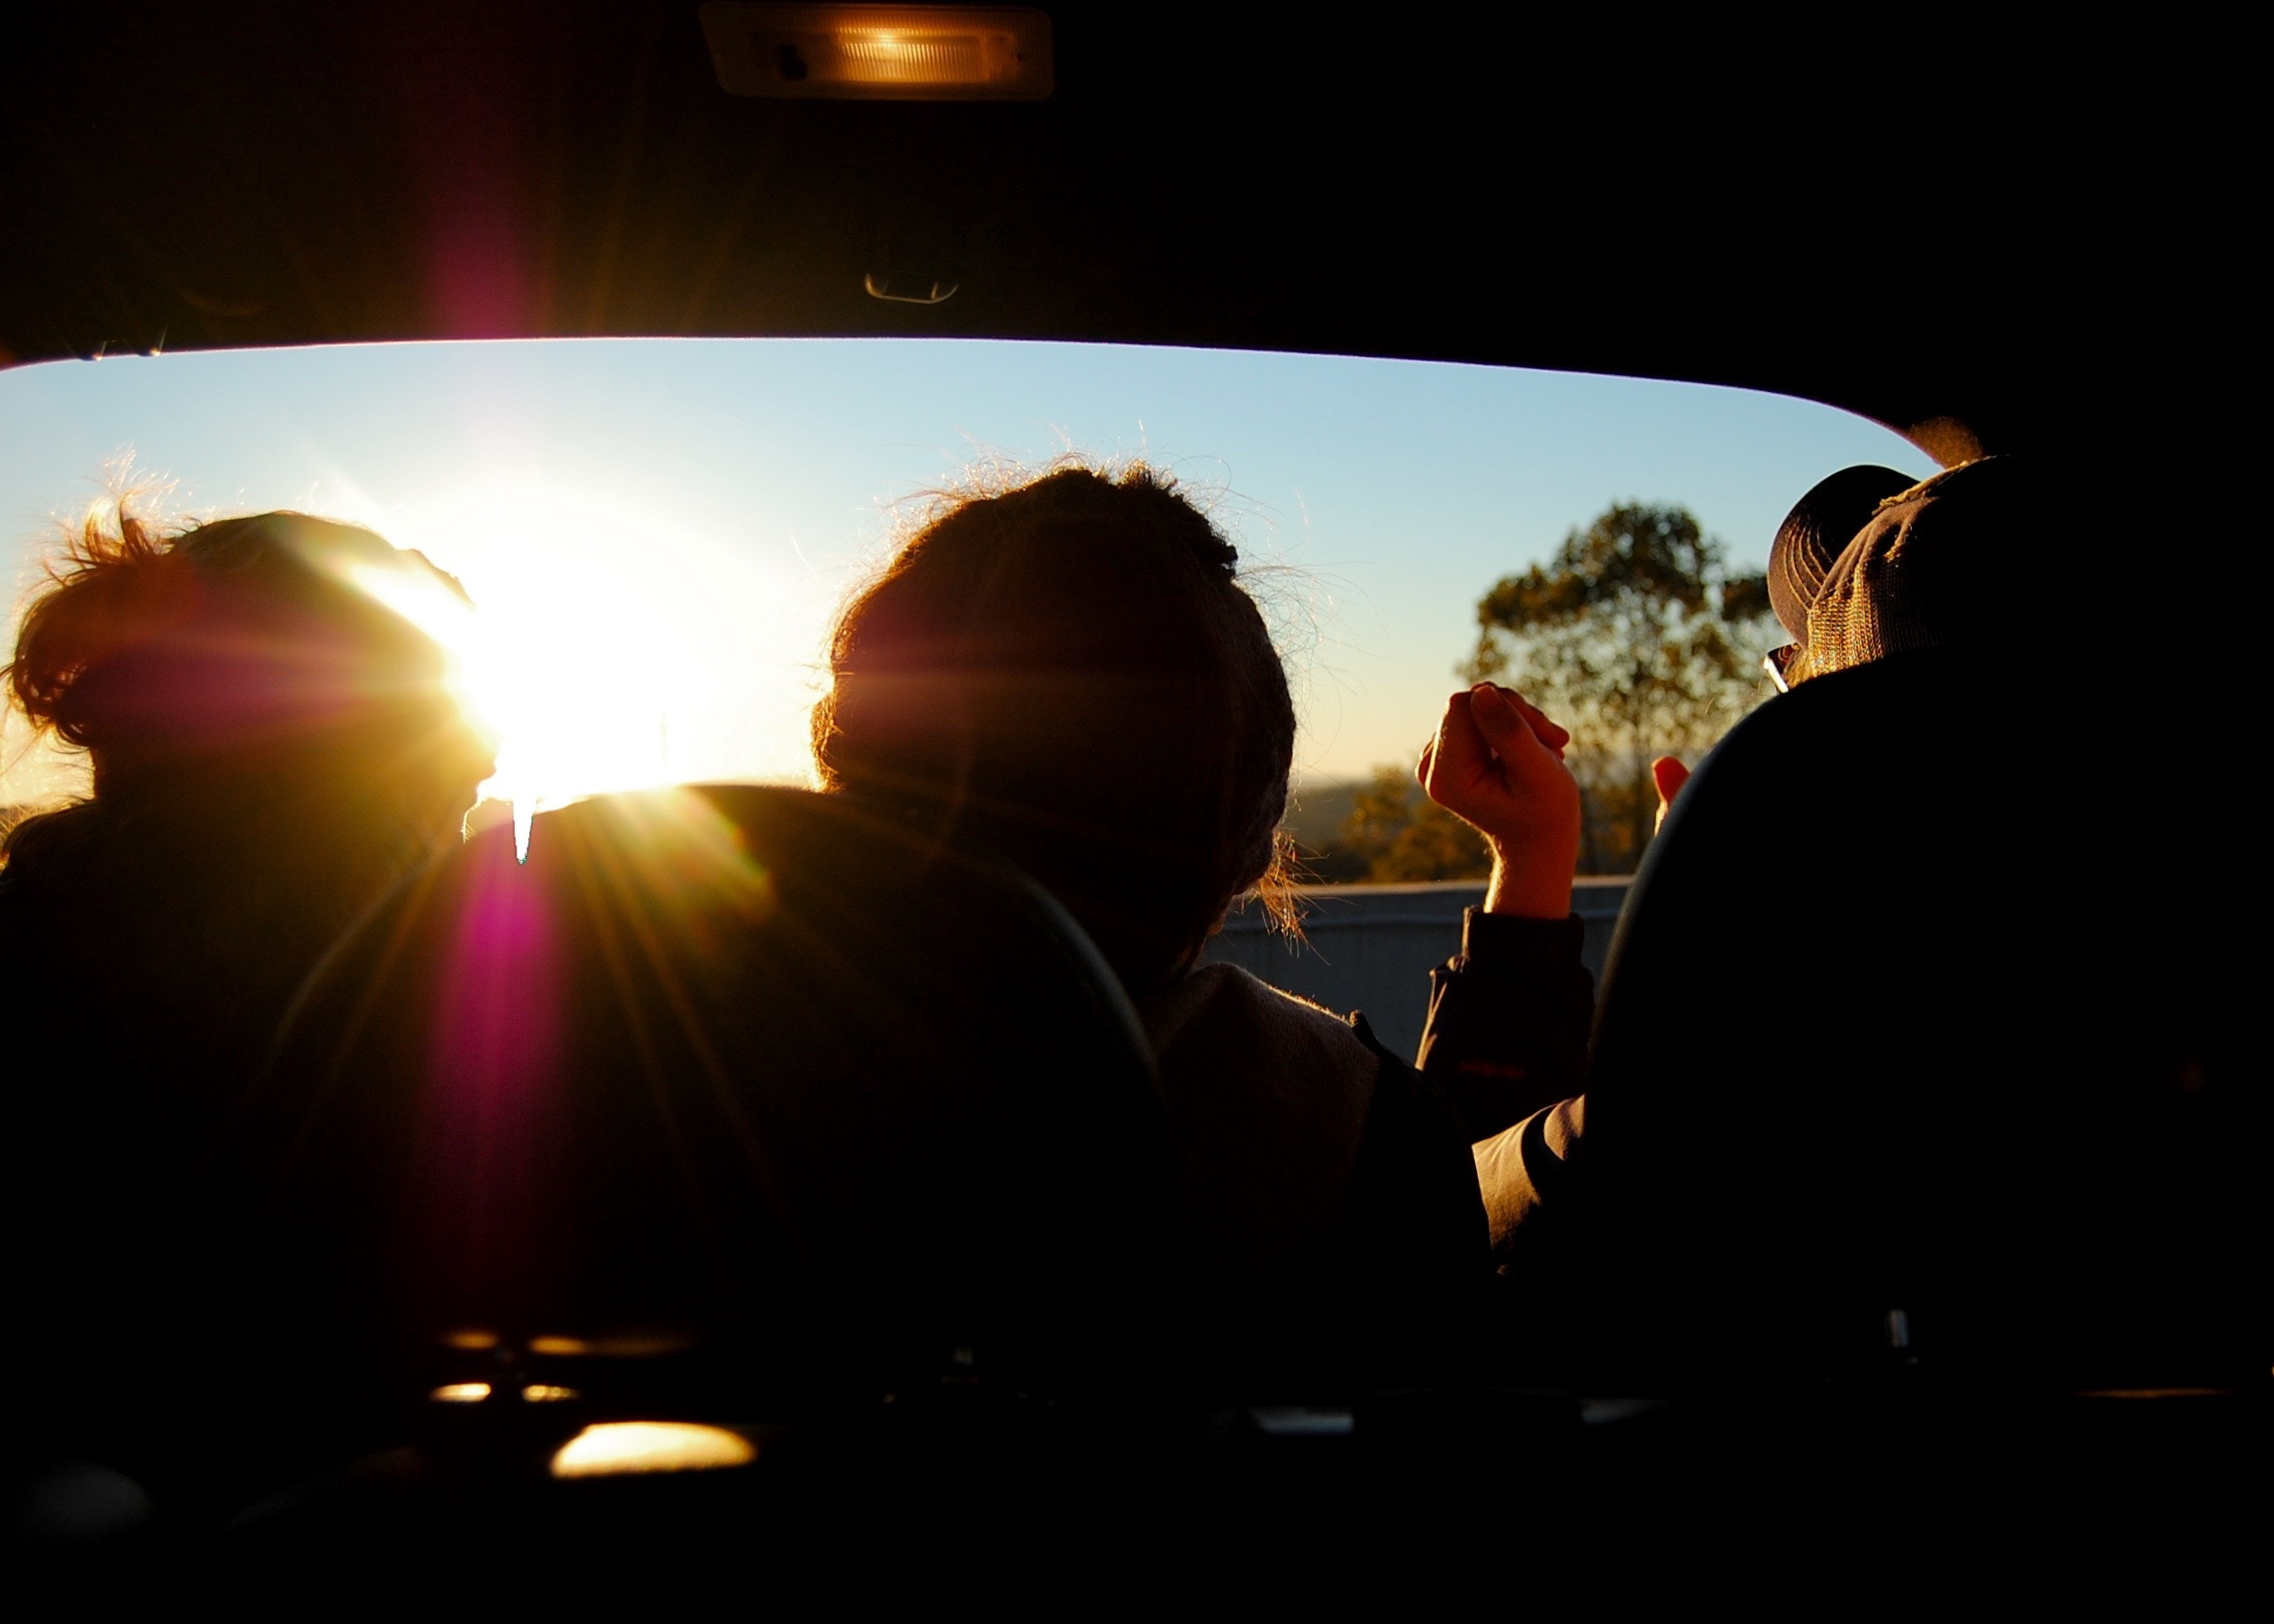 Blog: 10 of the craziest ways to keep cool in your car